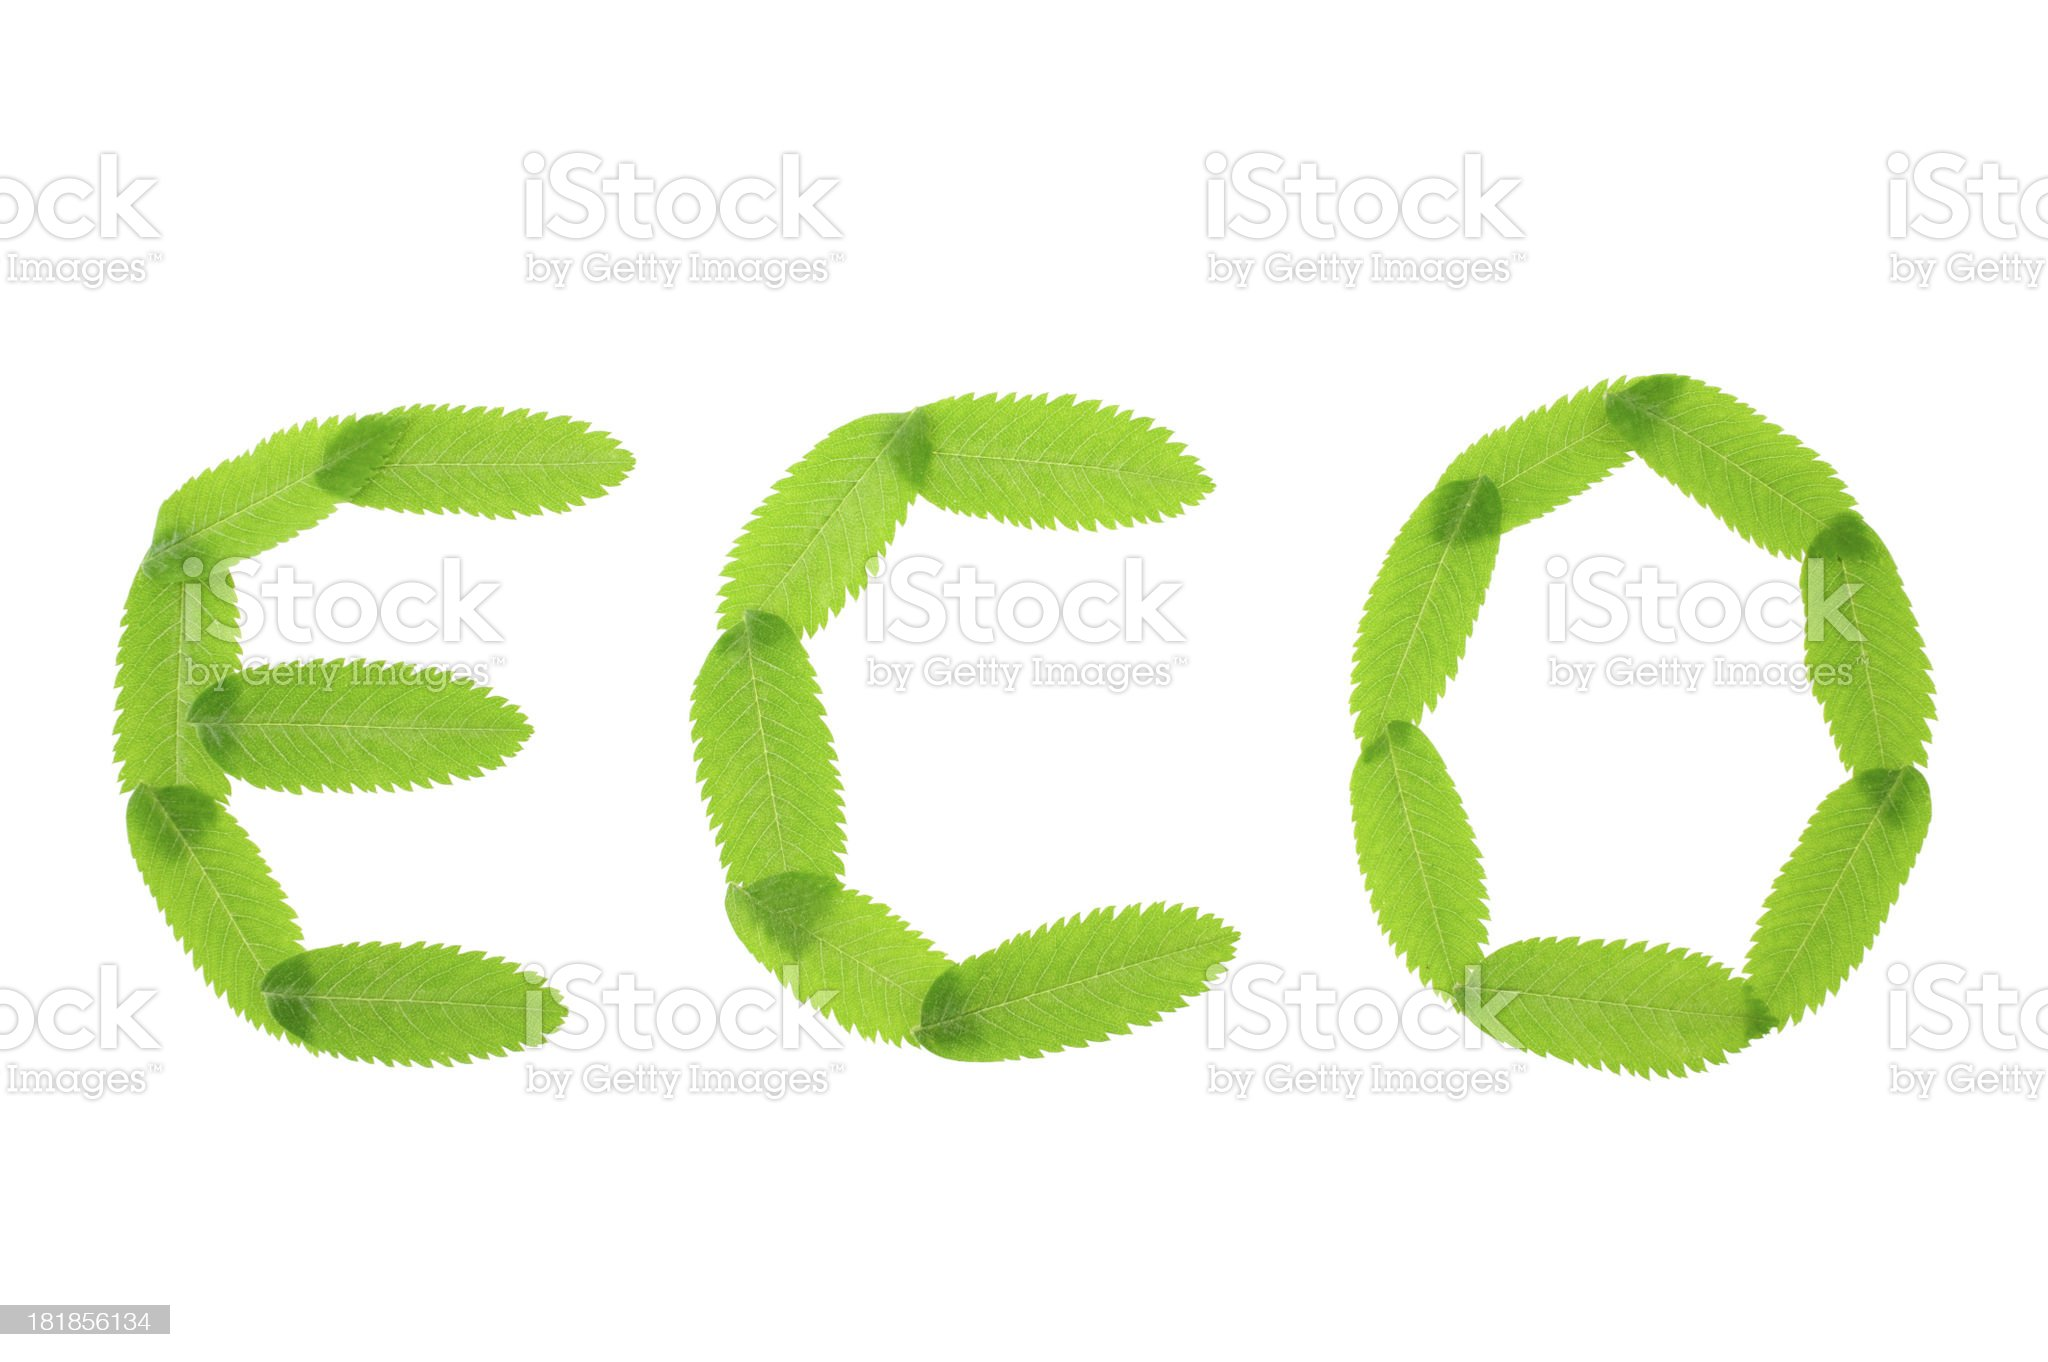 Eco text royalty-free stock photo